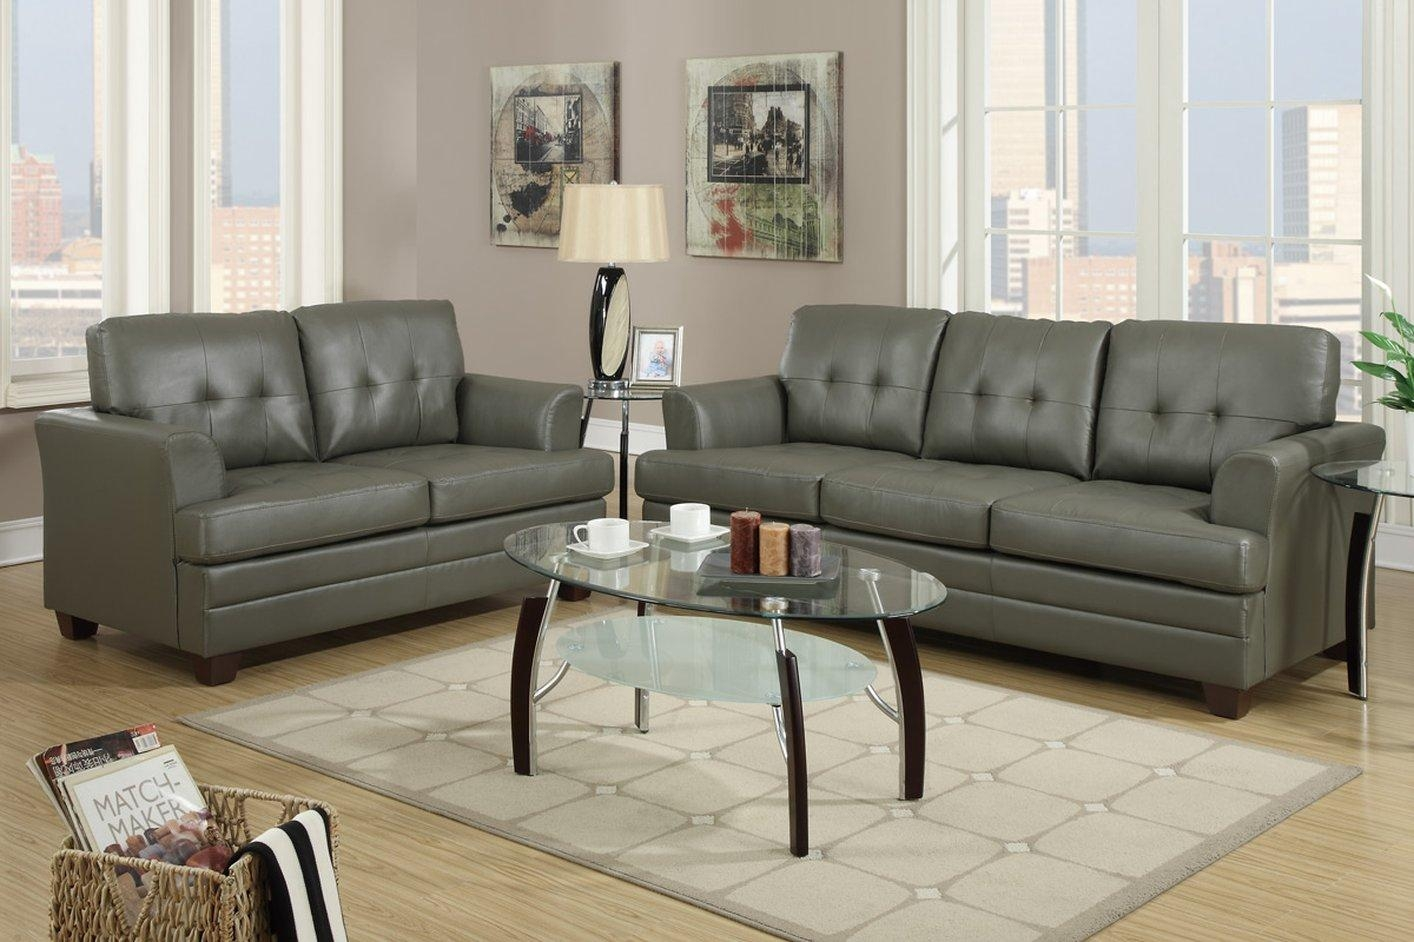 Black Leather Sofa And Loveseat Set | Tehranmix Decoration Throughout Black Leather Sofas And Loveseat Sets (View 15 of 20)